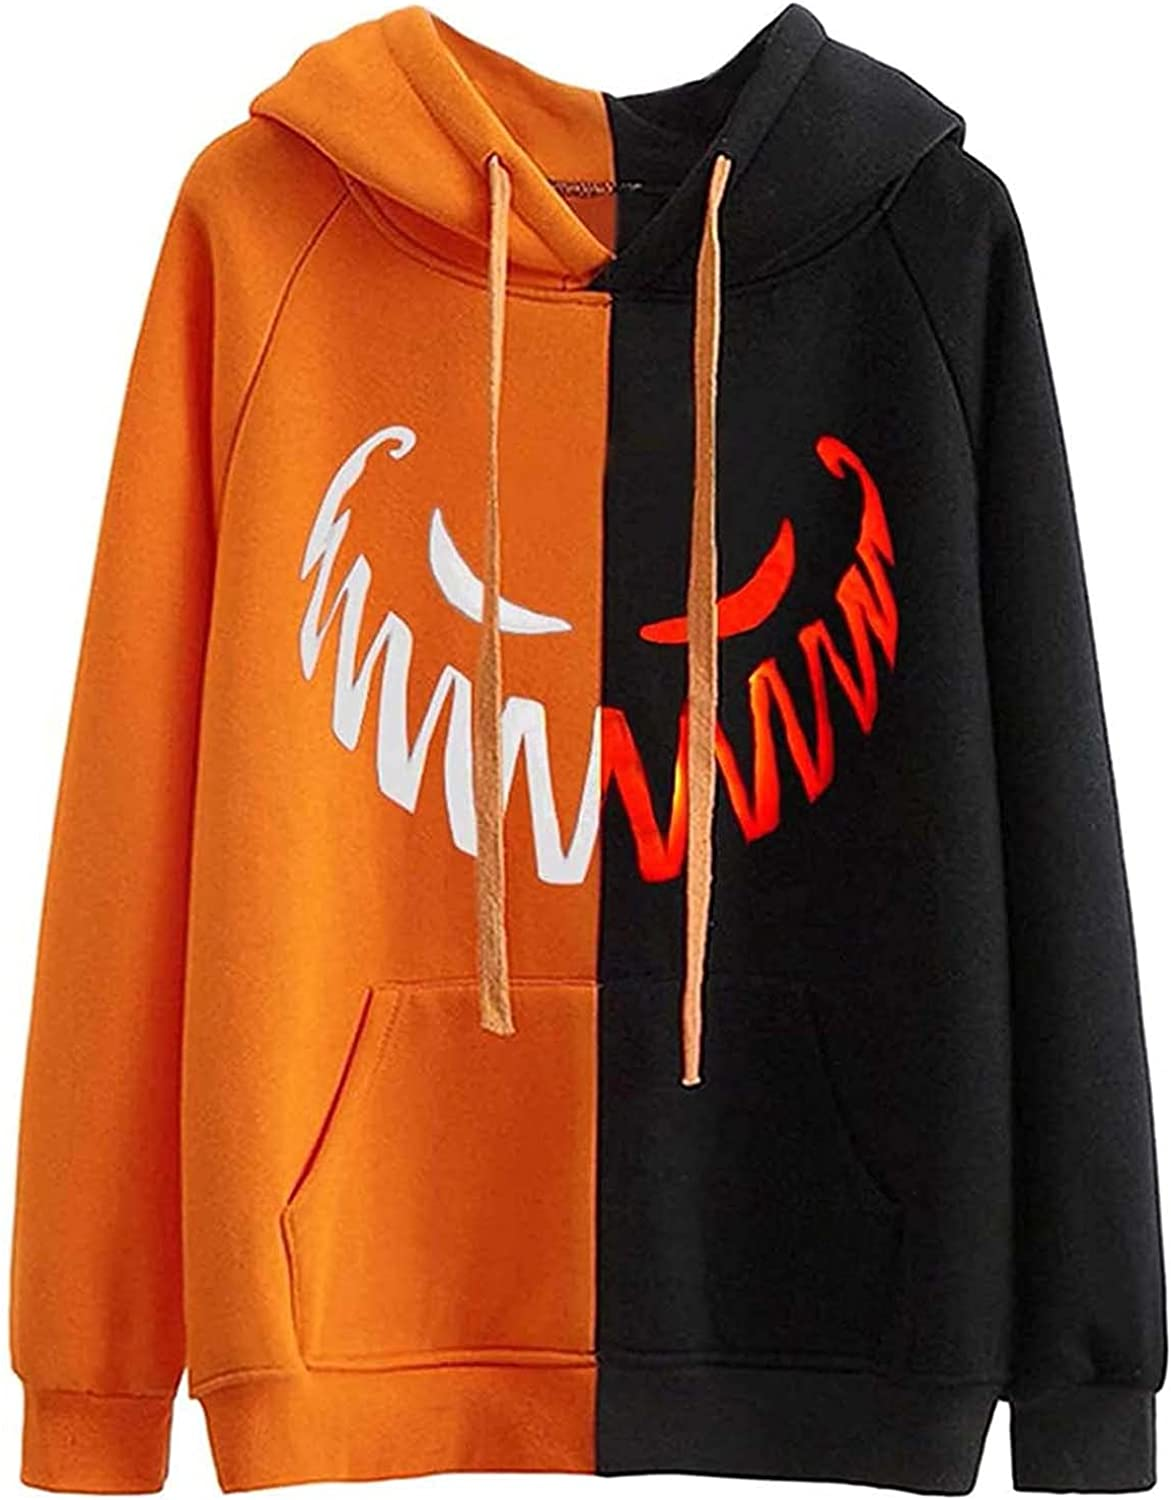 Halloween Hoodies for Women, Long Sleeve Hooded Funny Pumpkin Face Sweatshirts Casual Tops with Pockets